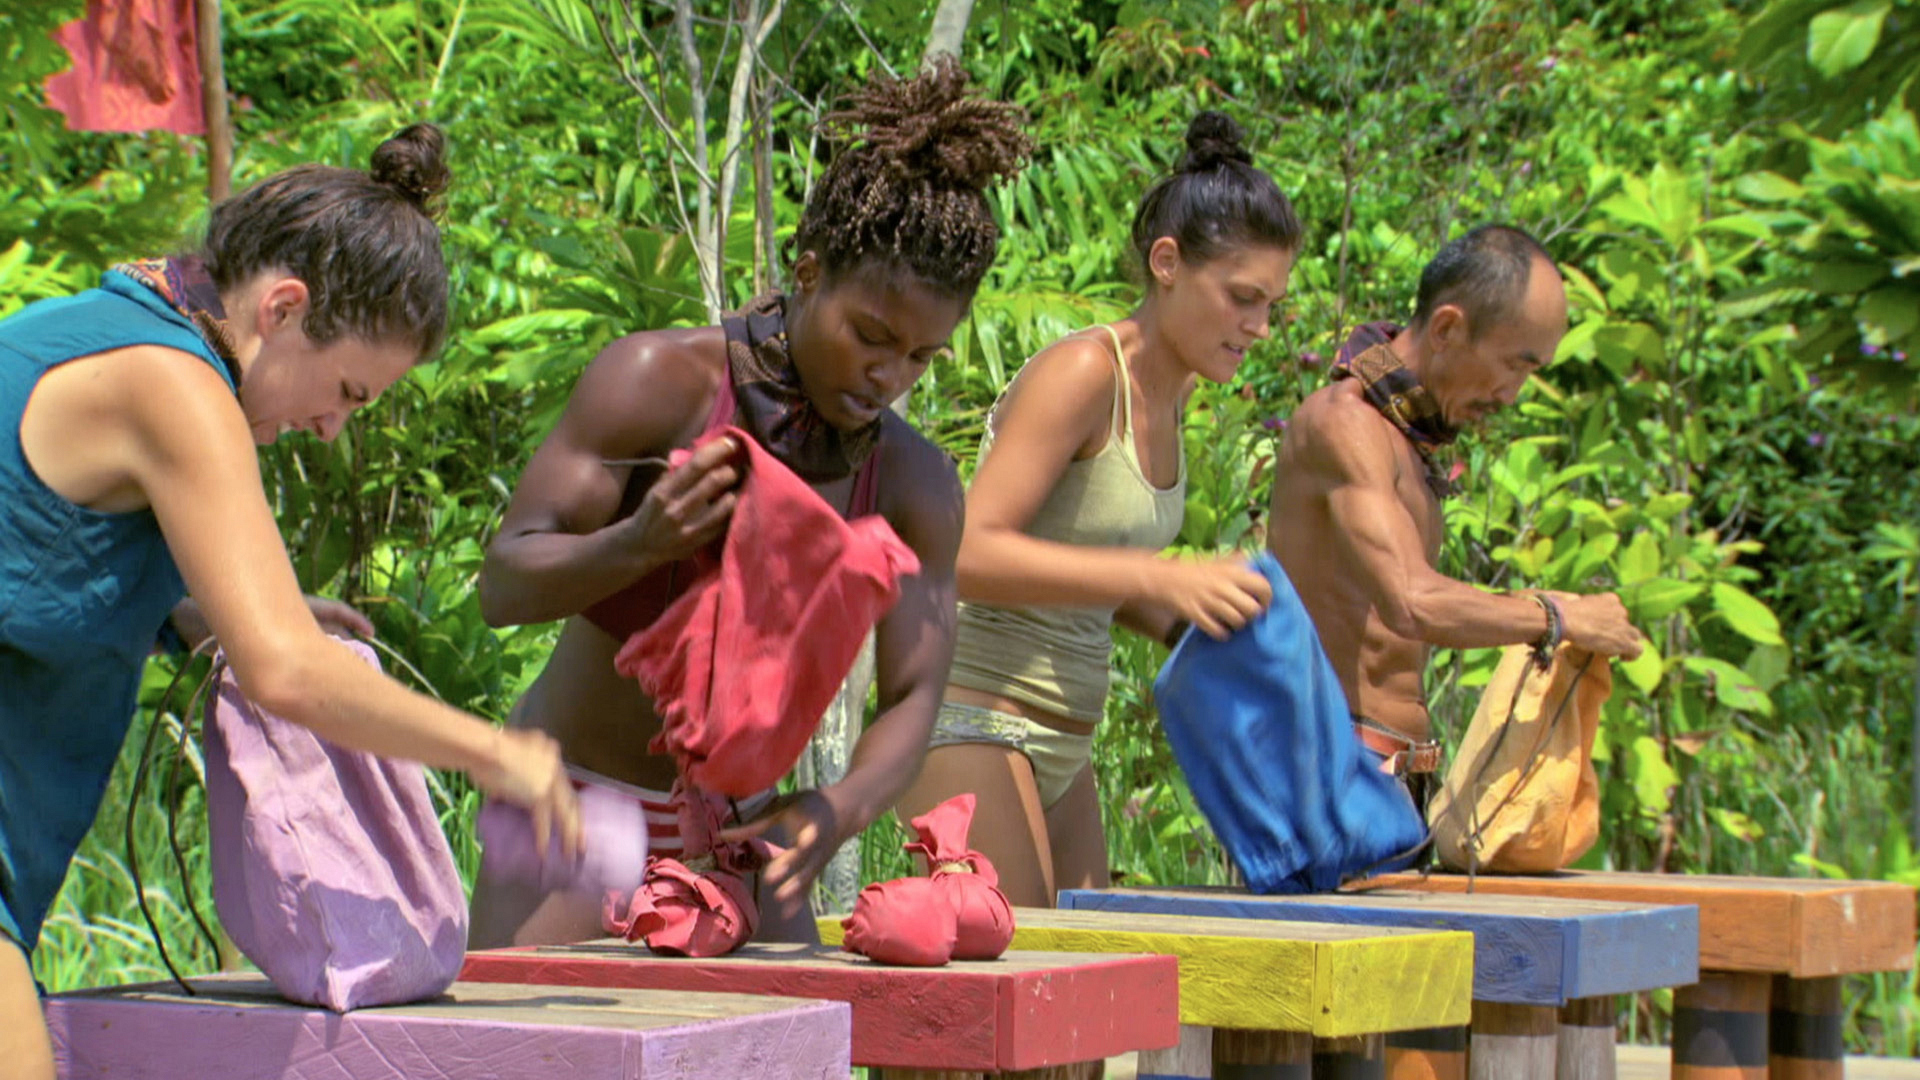 At the start of the challenge, Aubry, Cydney, Michele and Tai are neck and neck.